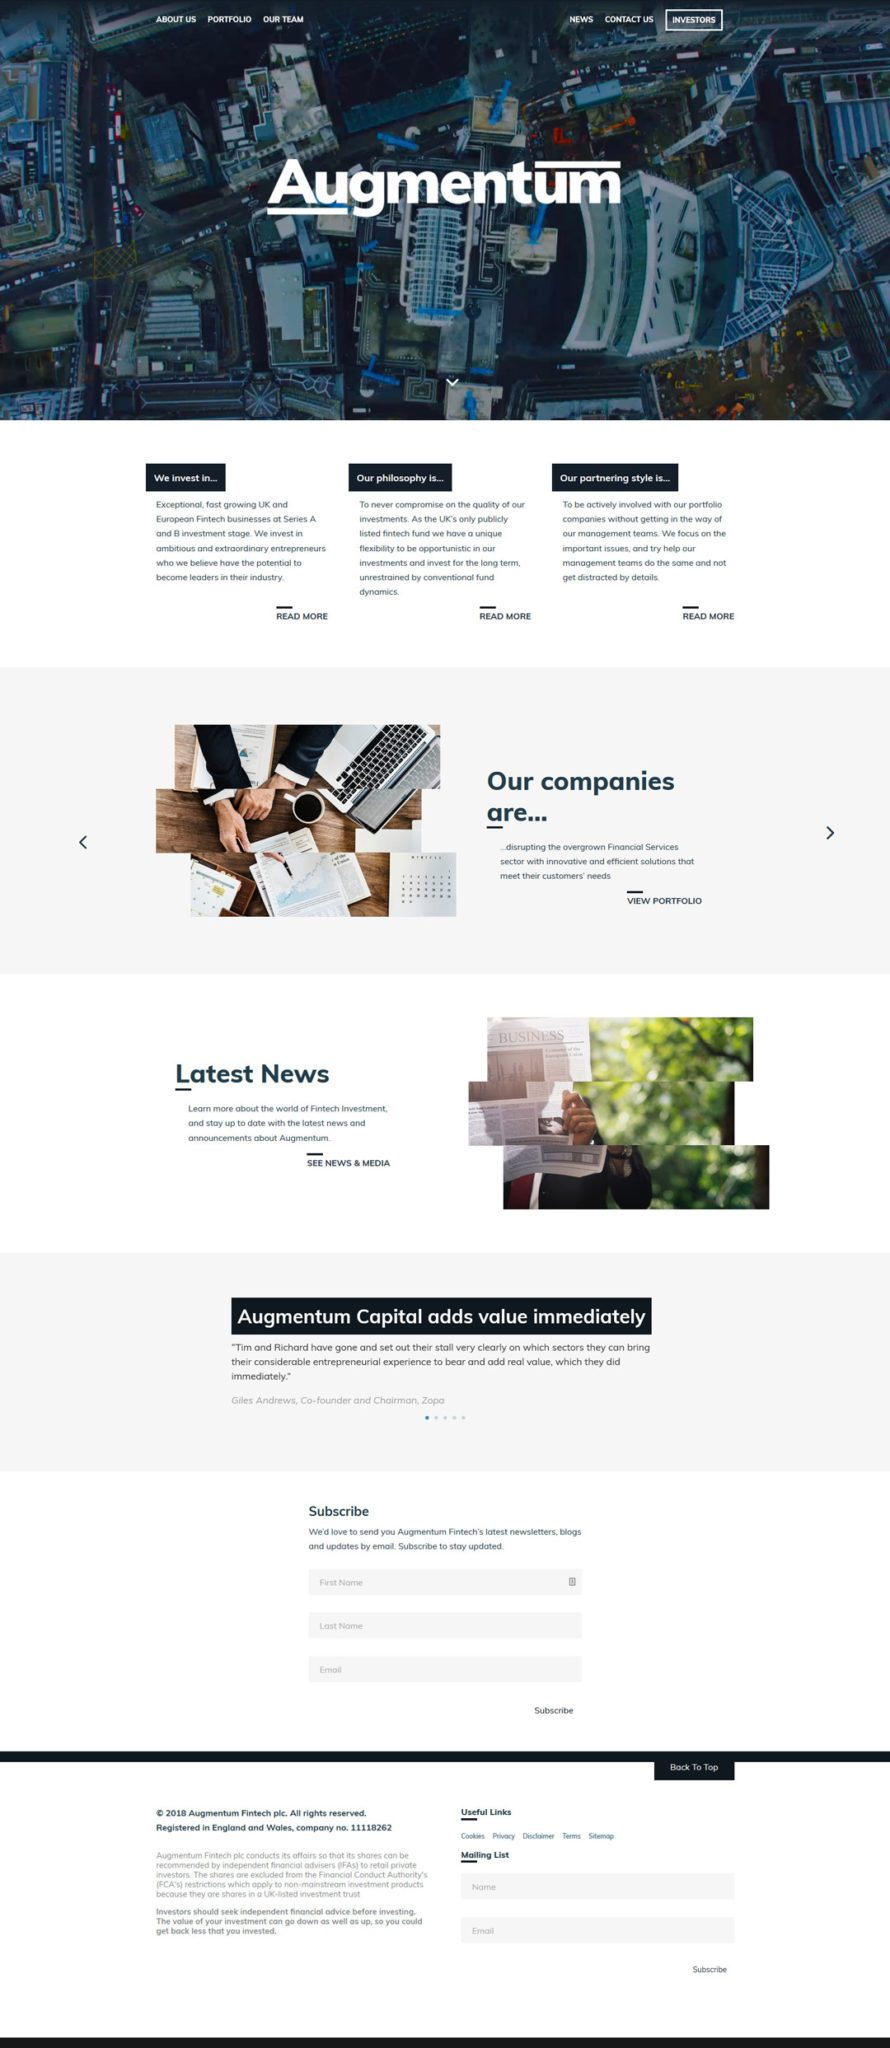 Augmentum website by Practically.io - Experts in web design and development